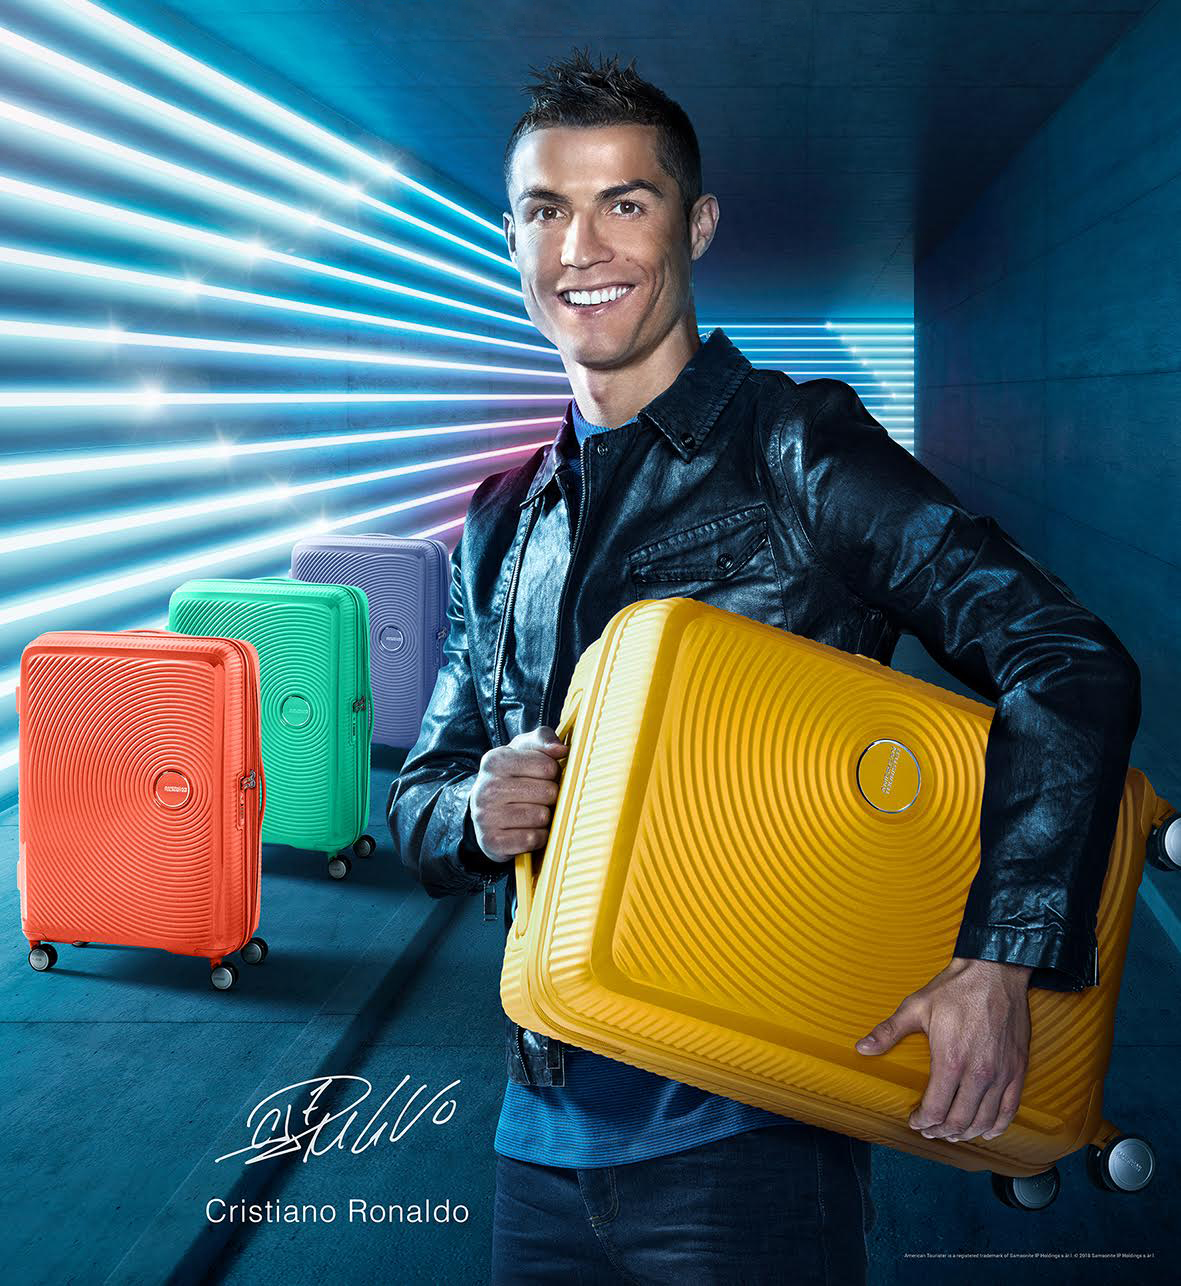 Cristiano Ronaldo with Samsonite suitcases